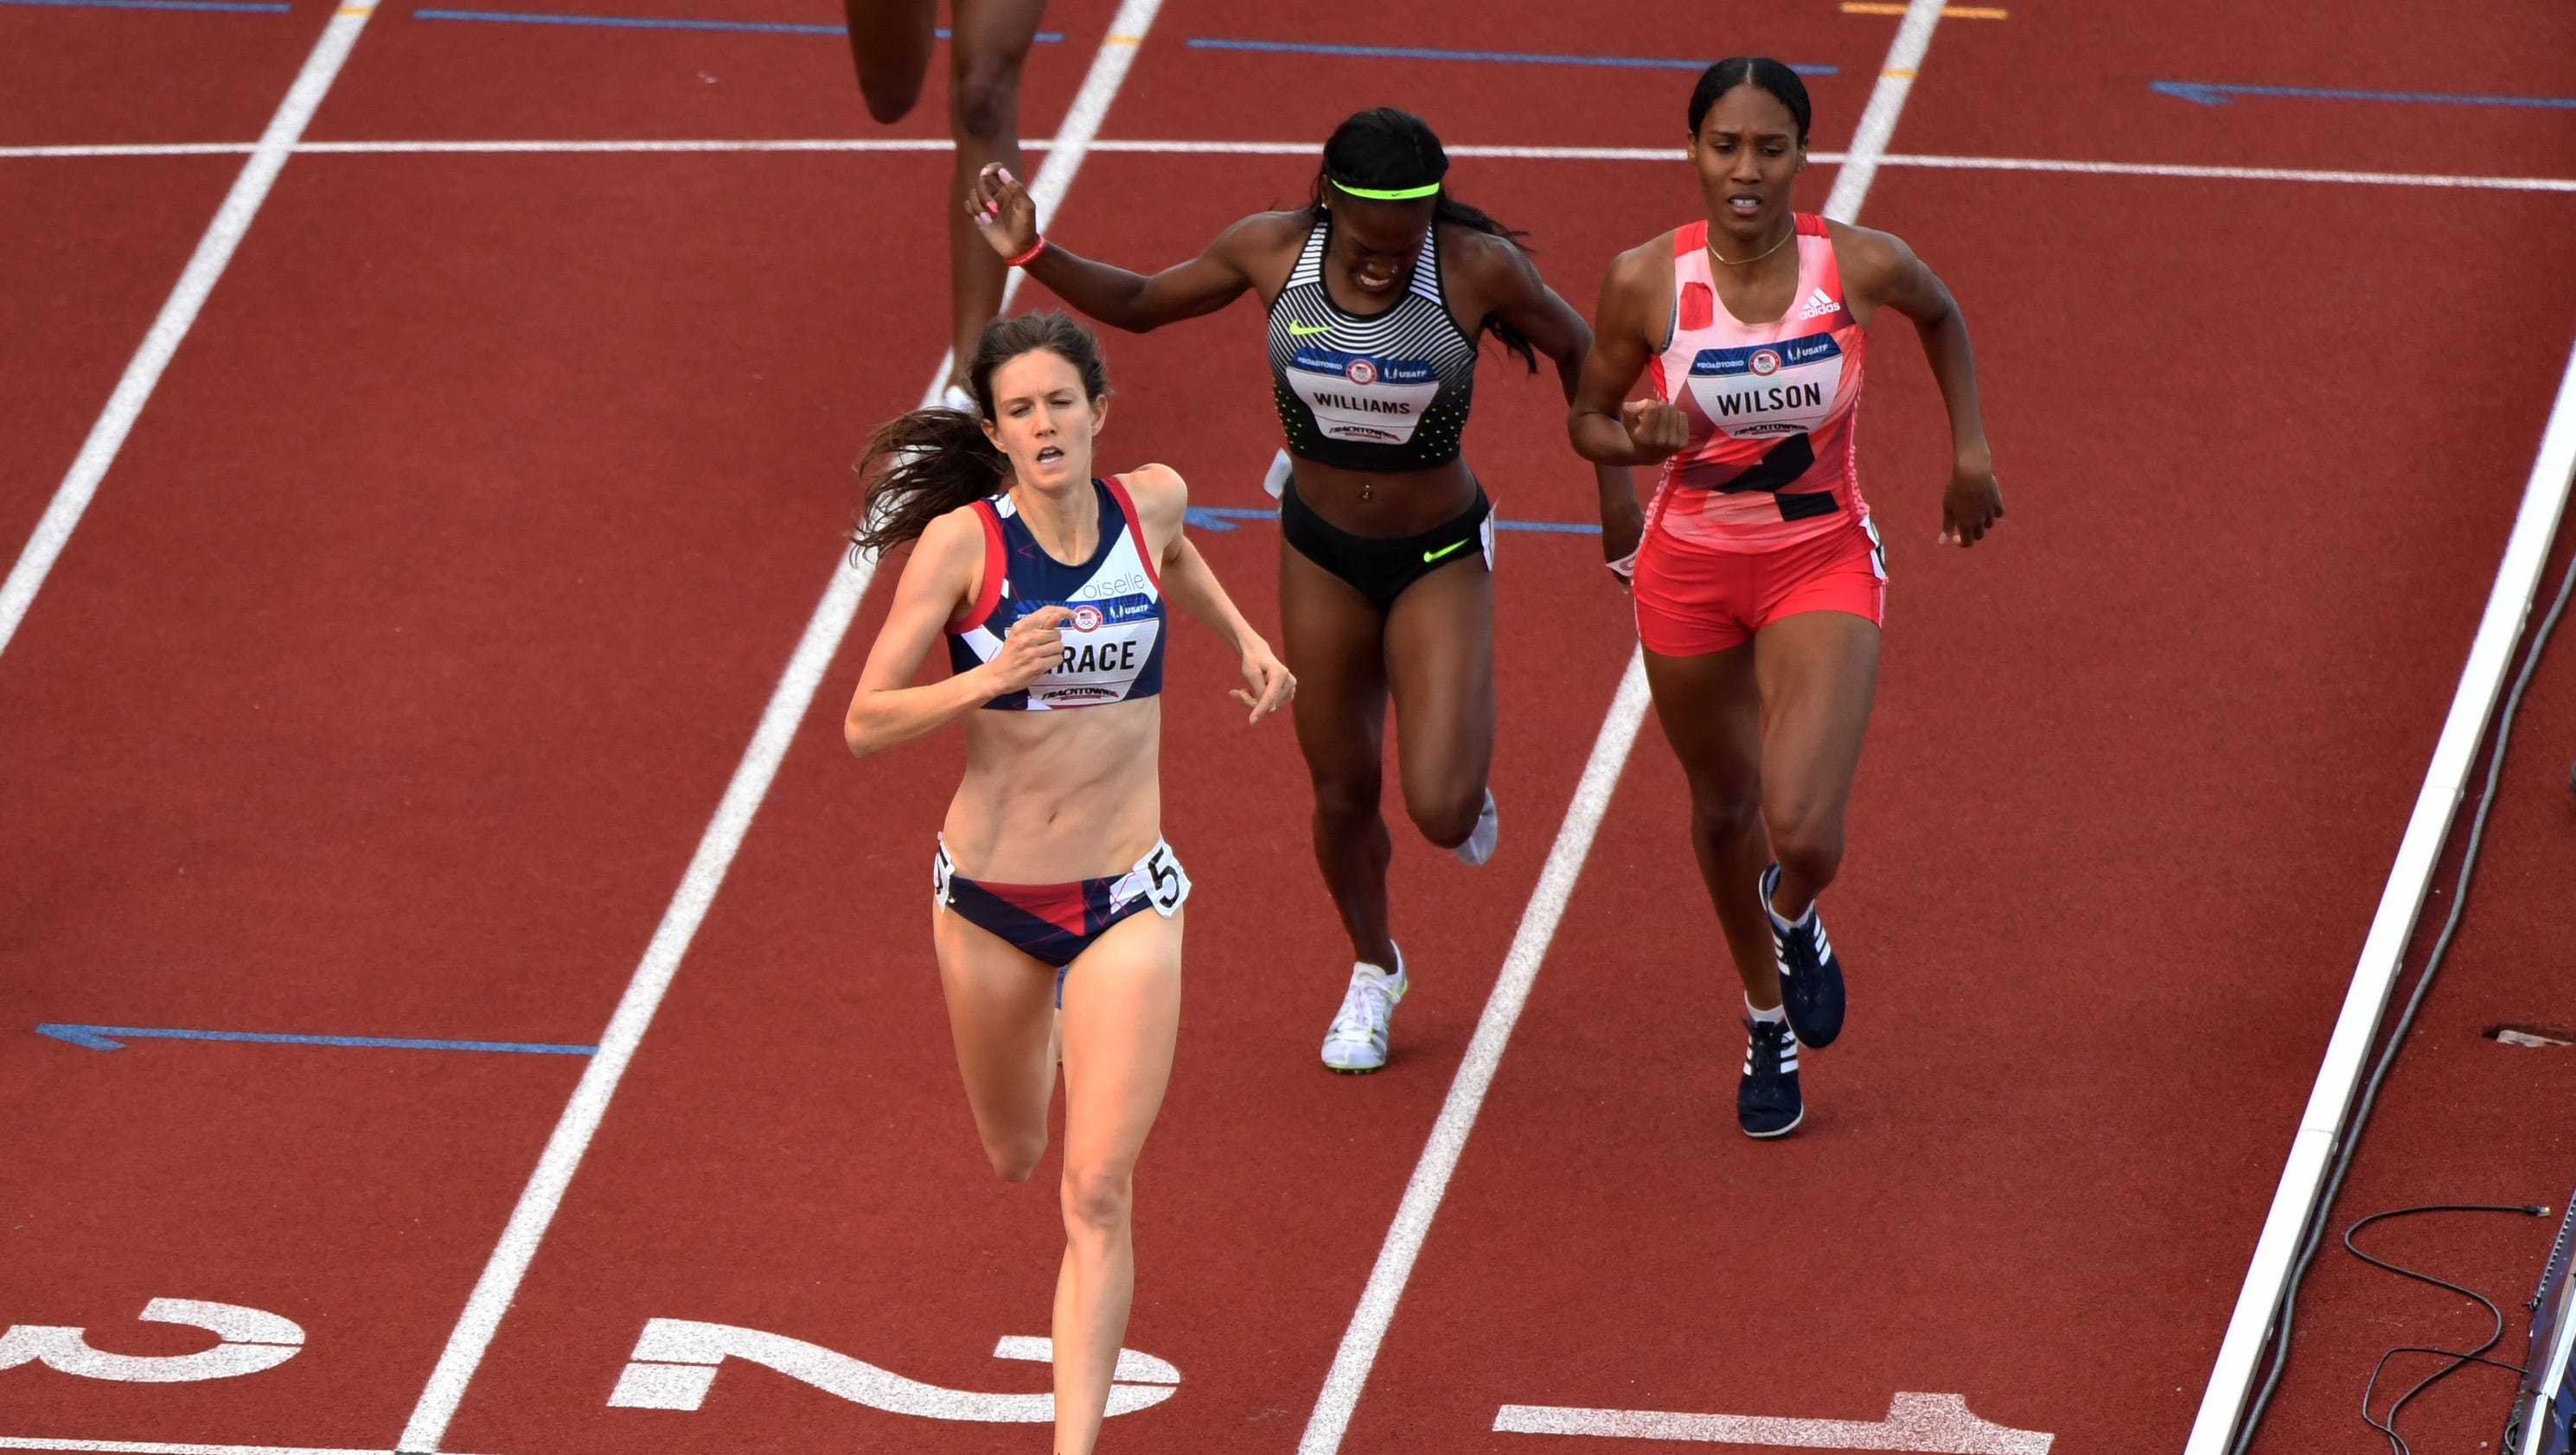 Usa amateur track and field